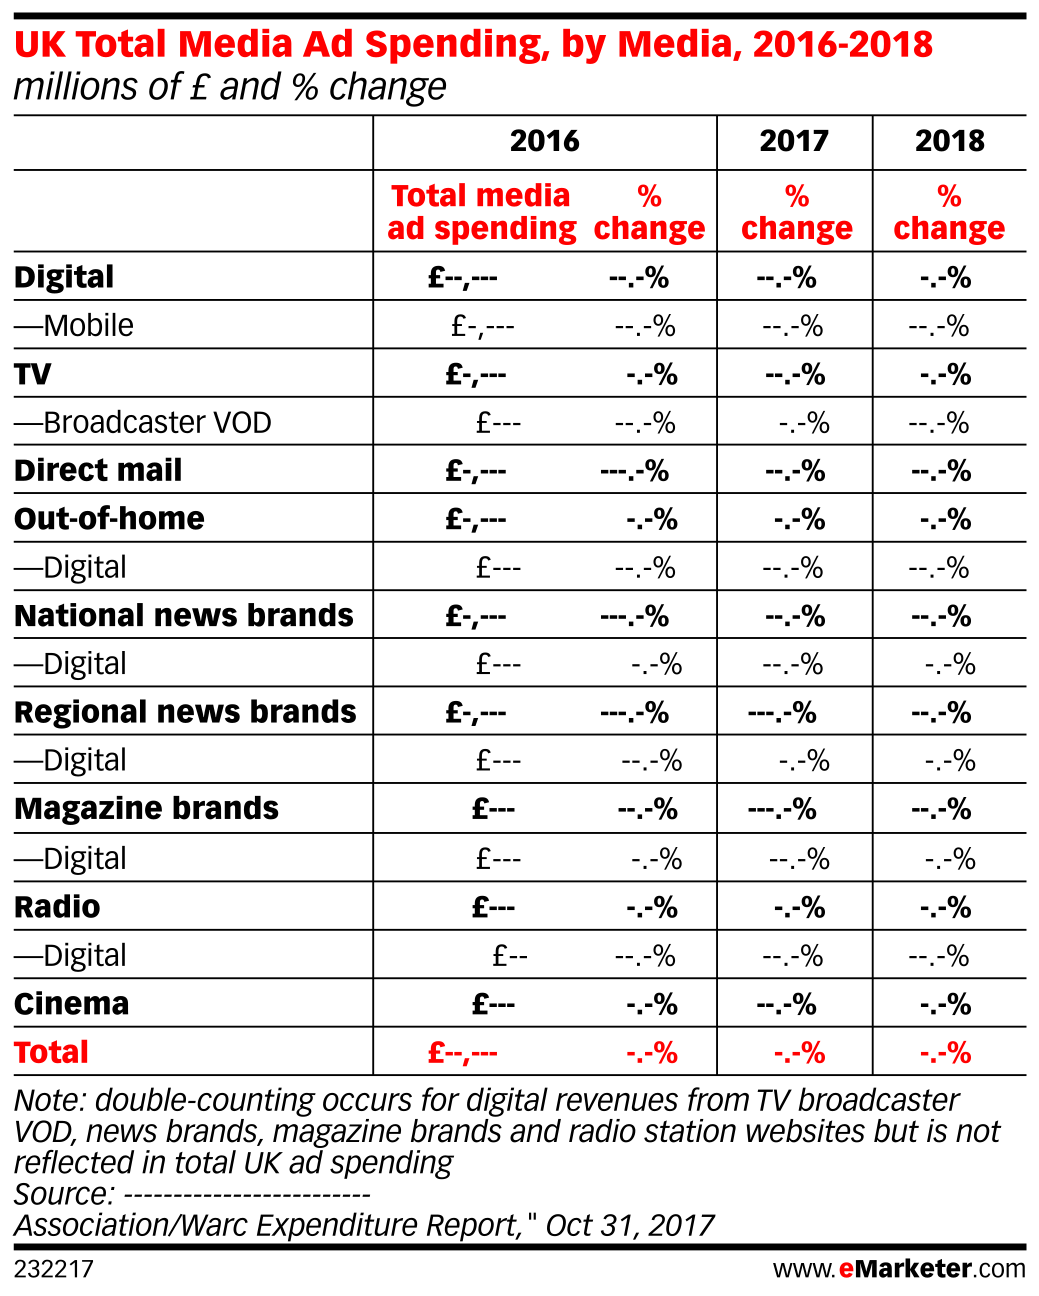 UK Total Media Ad Spending, by Media, 2016-2018 (millions of £ and % change)